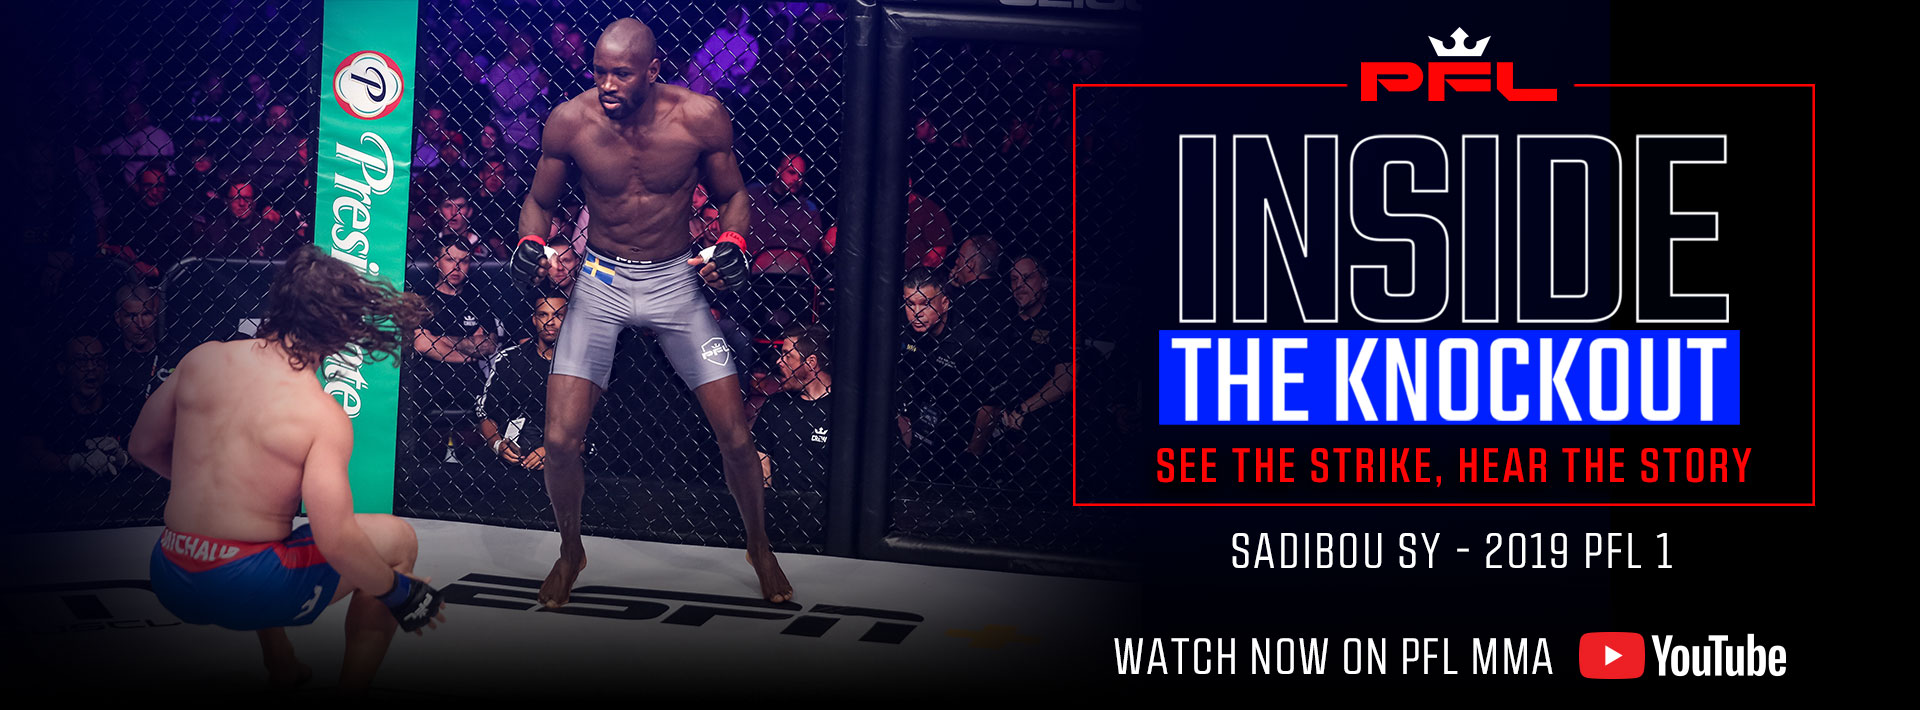 """Professional Fighters League Launches Three New Episodes Of """"Inside The Knockout"""", """"Run It Back"""", and """"MMA At Home"""" This Week"""